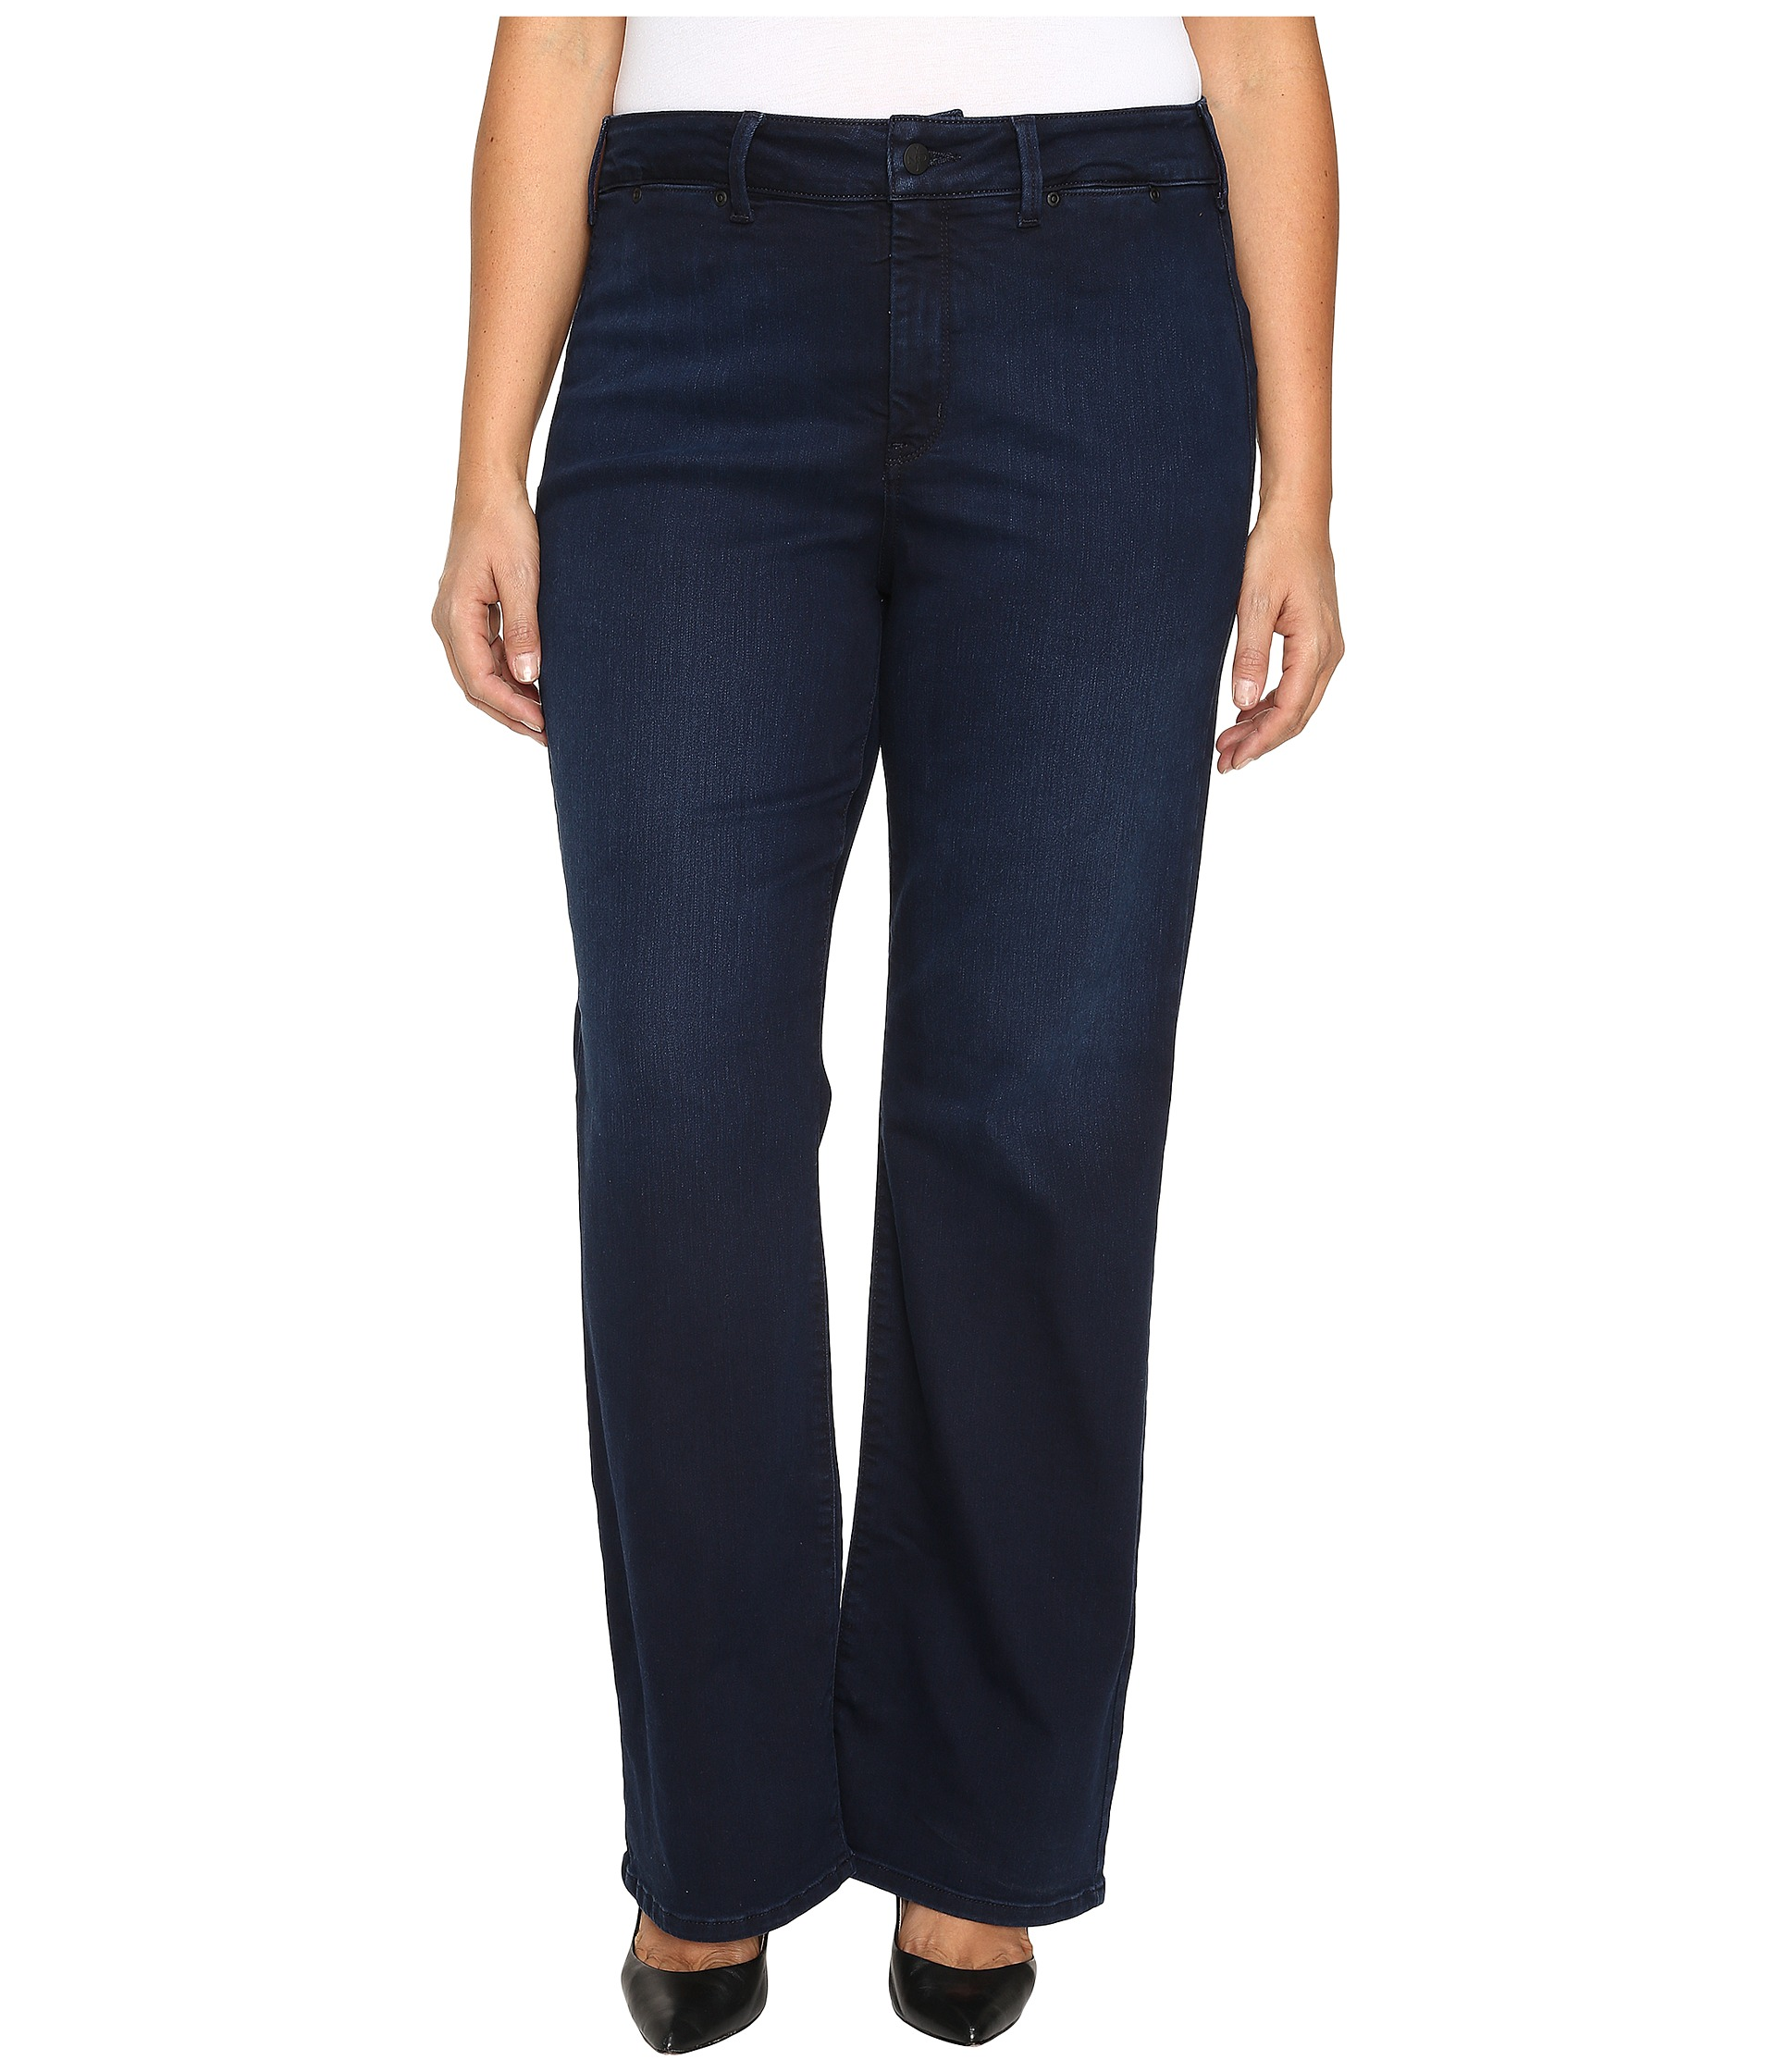 Plus Size Trousers/Jeans (76) With the latest trends and curve-flattering cuts, our range of plus size trousers and jeans are a curvy girl's dream. Shop our collection for different colours and styles of jeans, trousers, culottes, leggings and jeggings, all expertly designed to flatter the curvy girl, in sizes